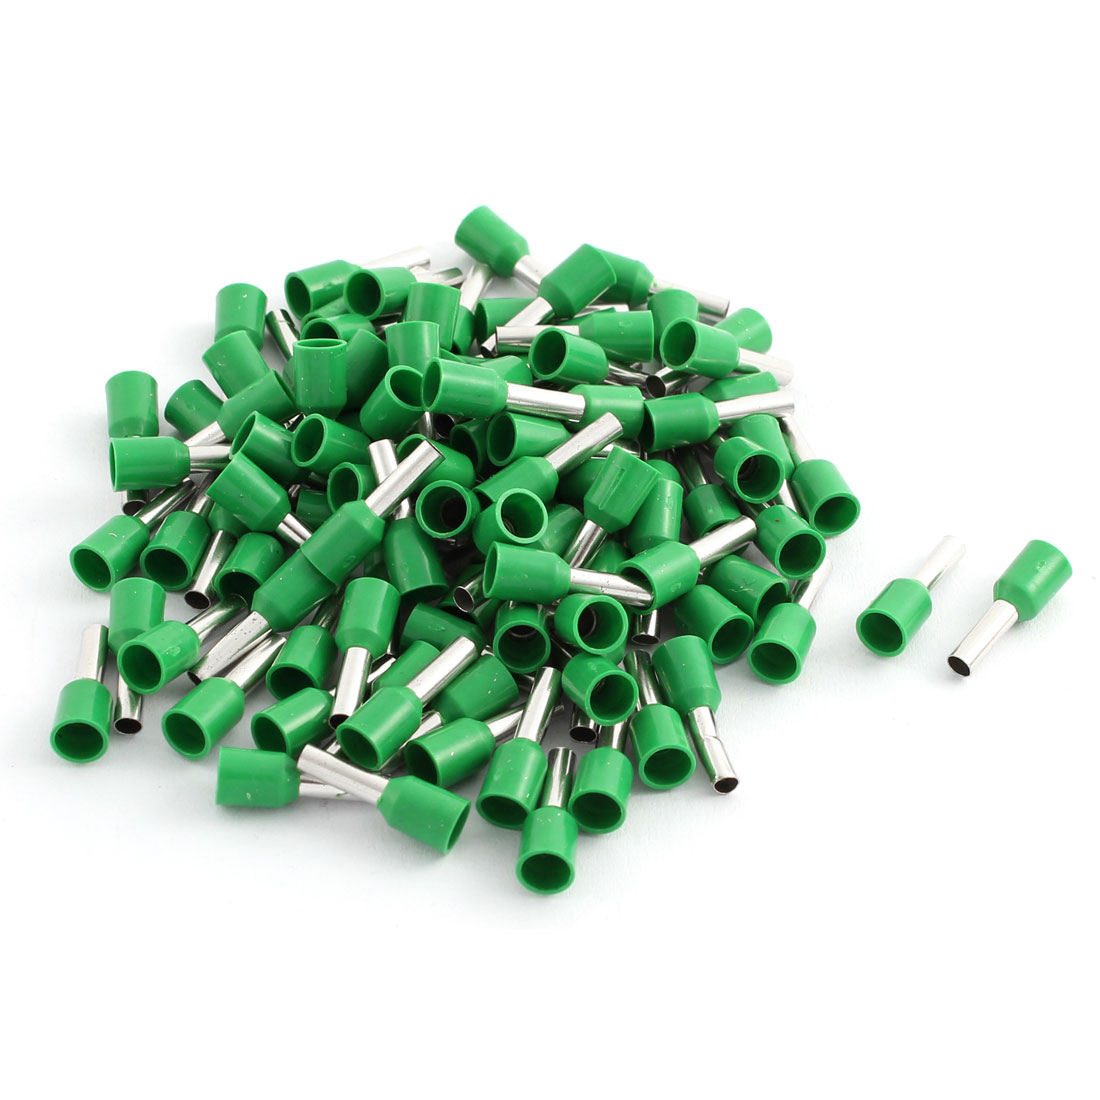 100 Pcs 2.5mm2 Crimp Wire End Terminal Insulated Bootlace Ferrule Connector Green